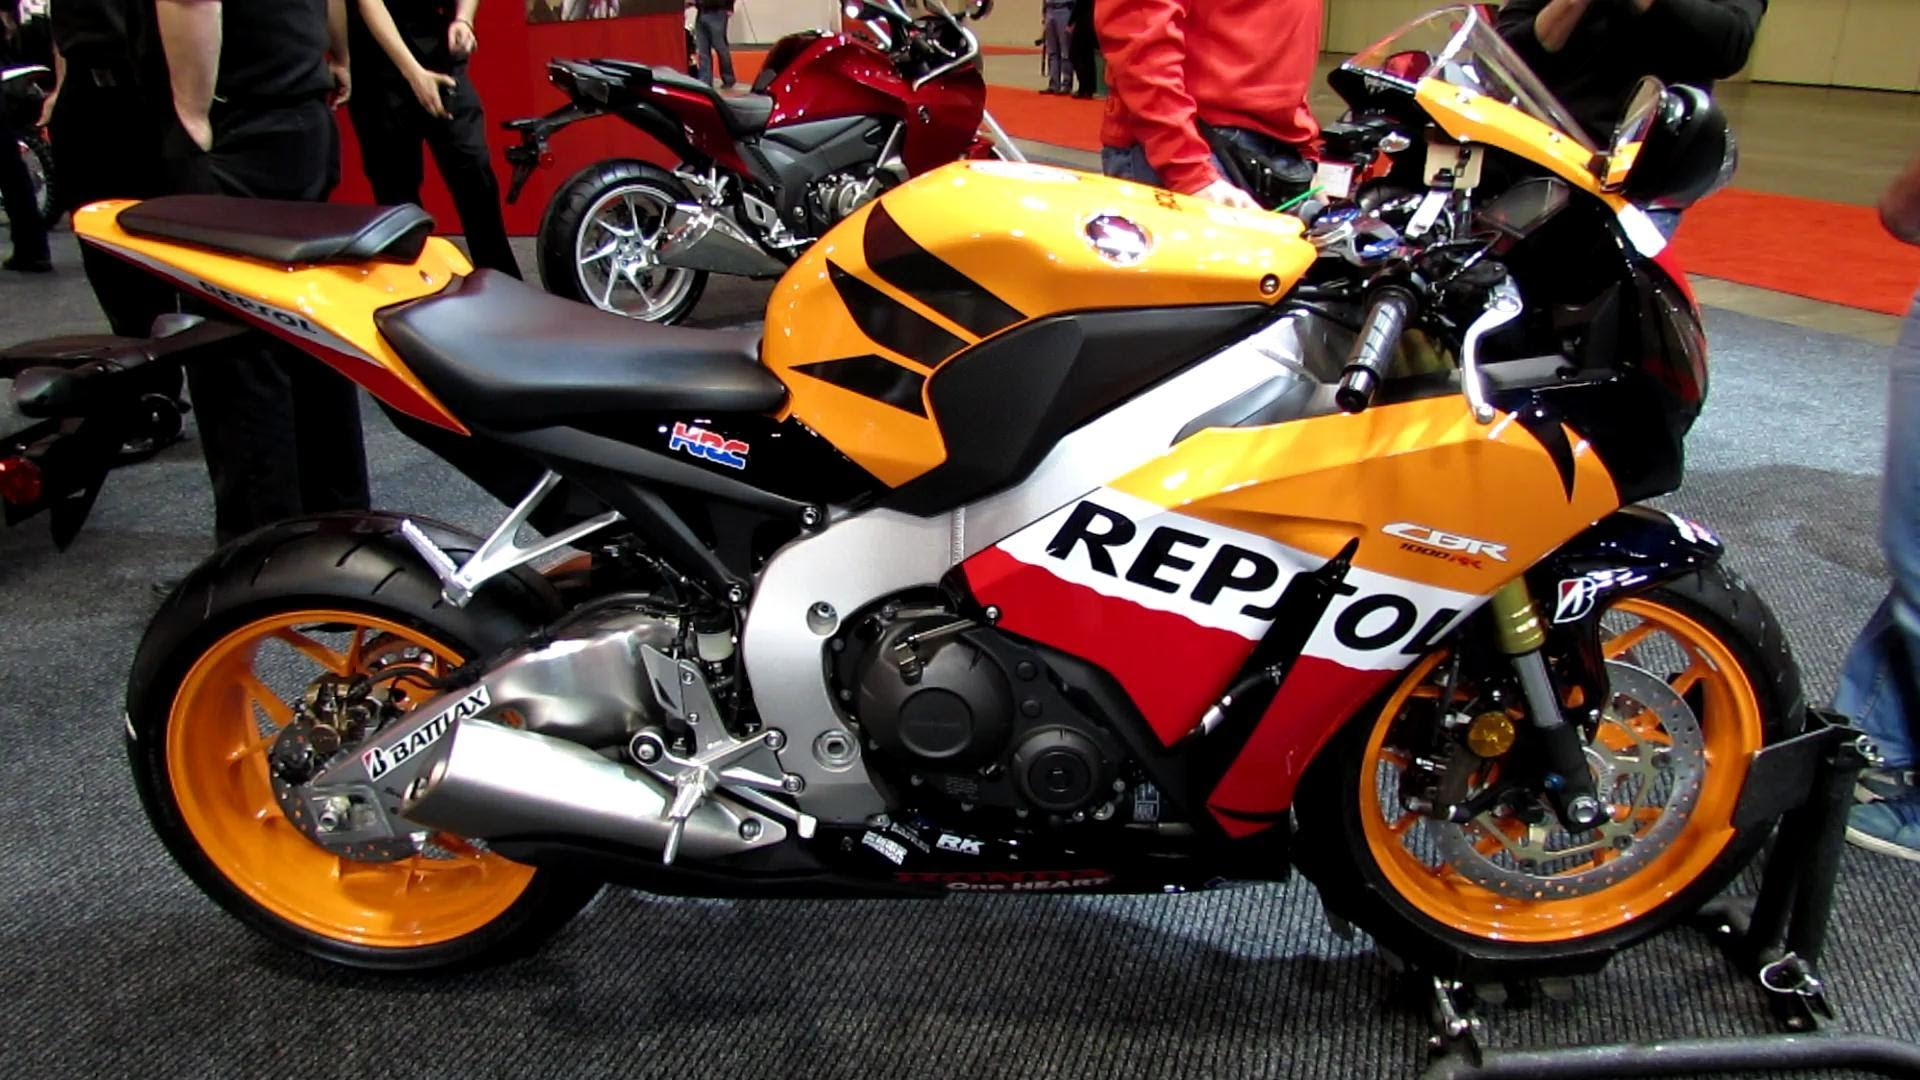 2012 honda cbr 1000 rr pics specs and information. Black Bedroom Furniture Sets. Home Design Ideas